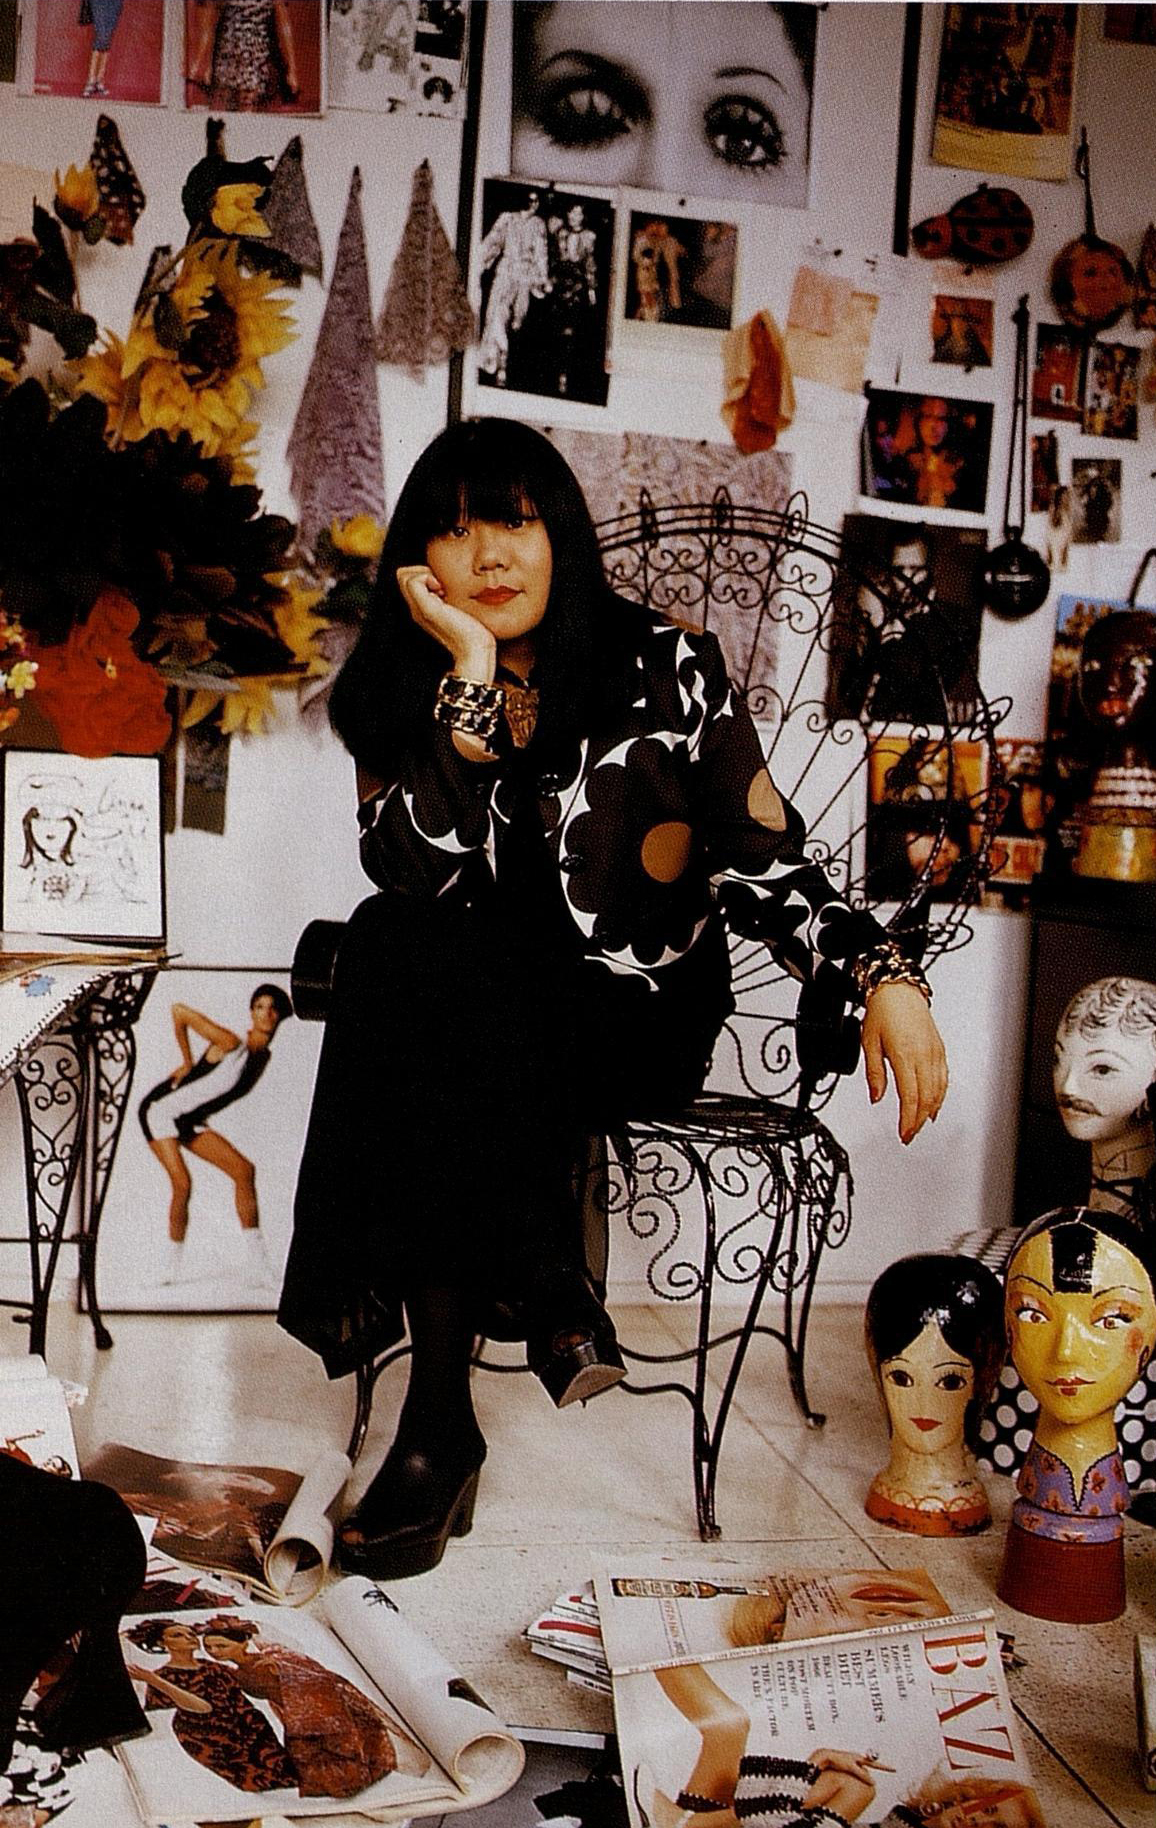 Anna Sui in her office. Photographed by Jesse Frohman for Harper's Bazaar, September 1992.